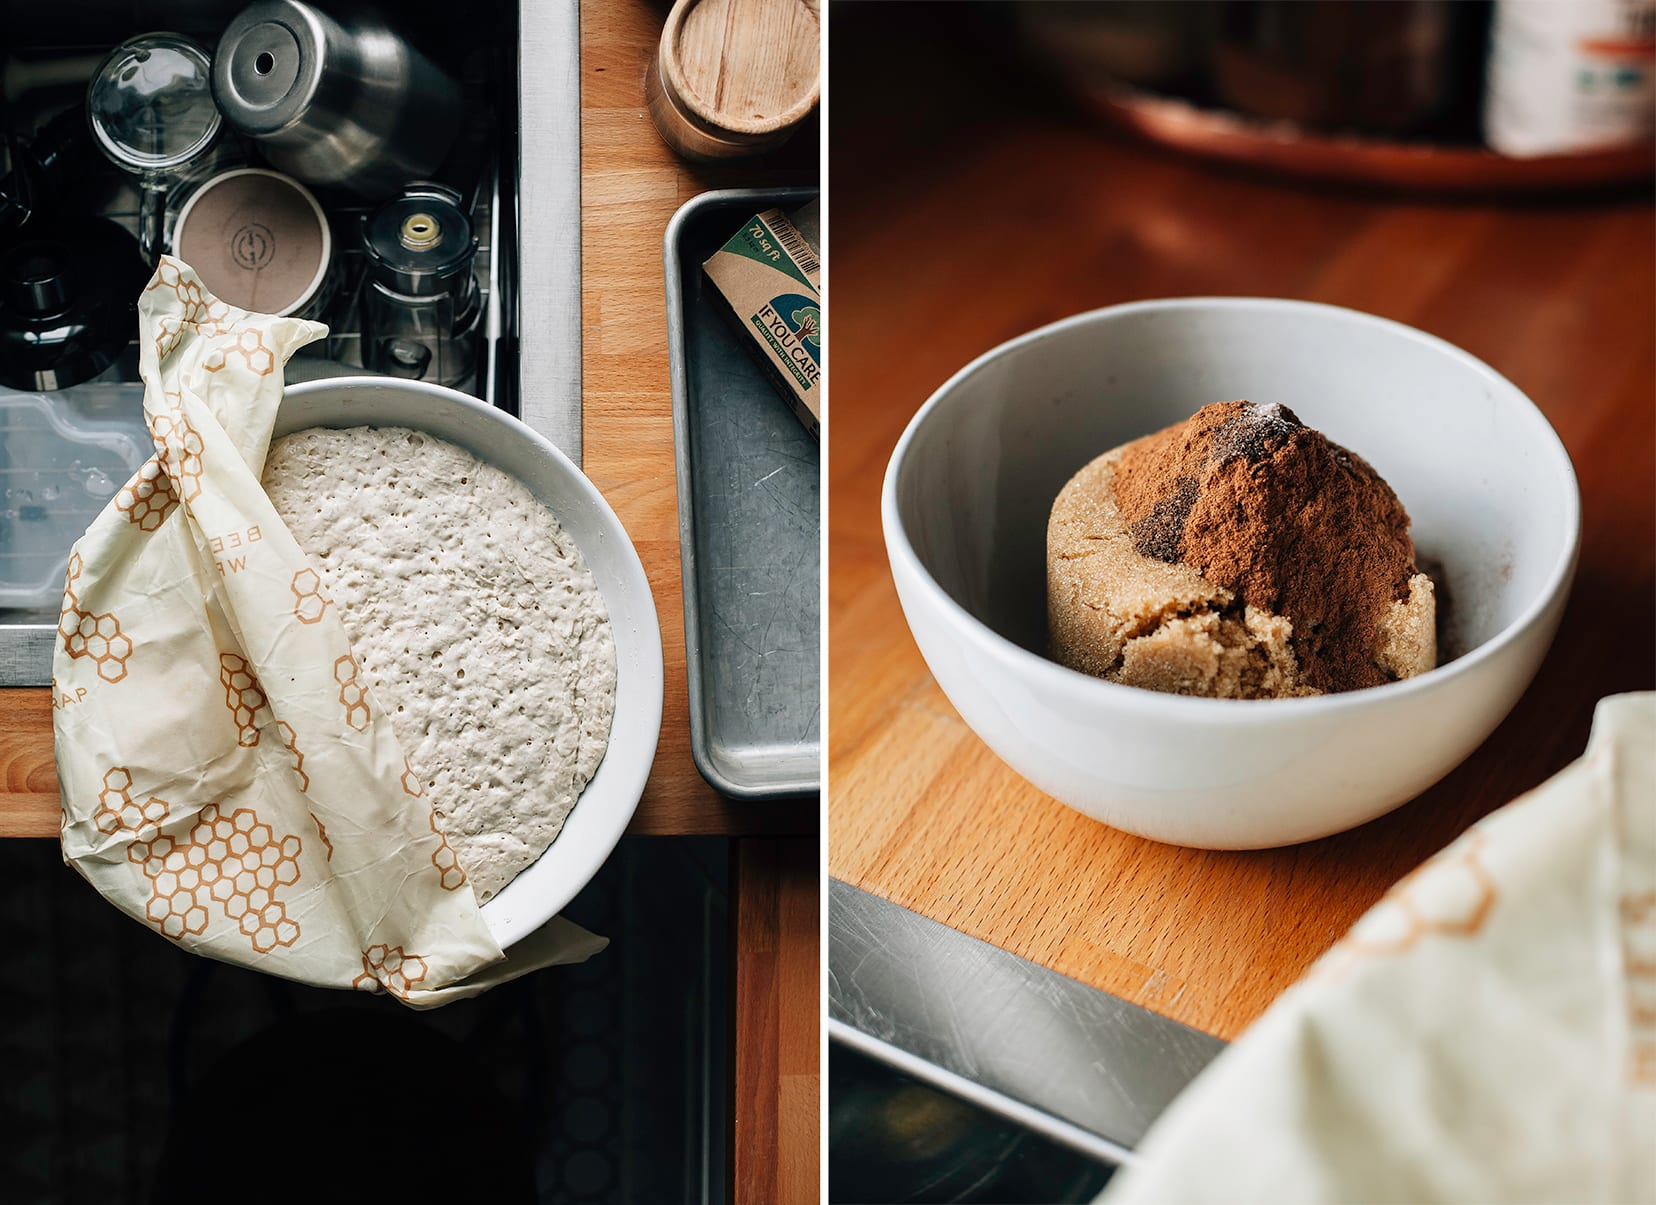 Two images show a bowl of dough and a bowl with a brown sugar and cinnamon mixture.